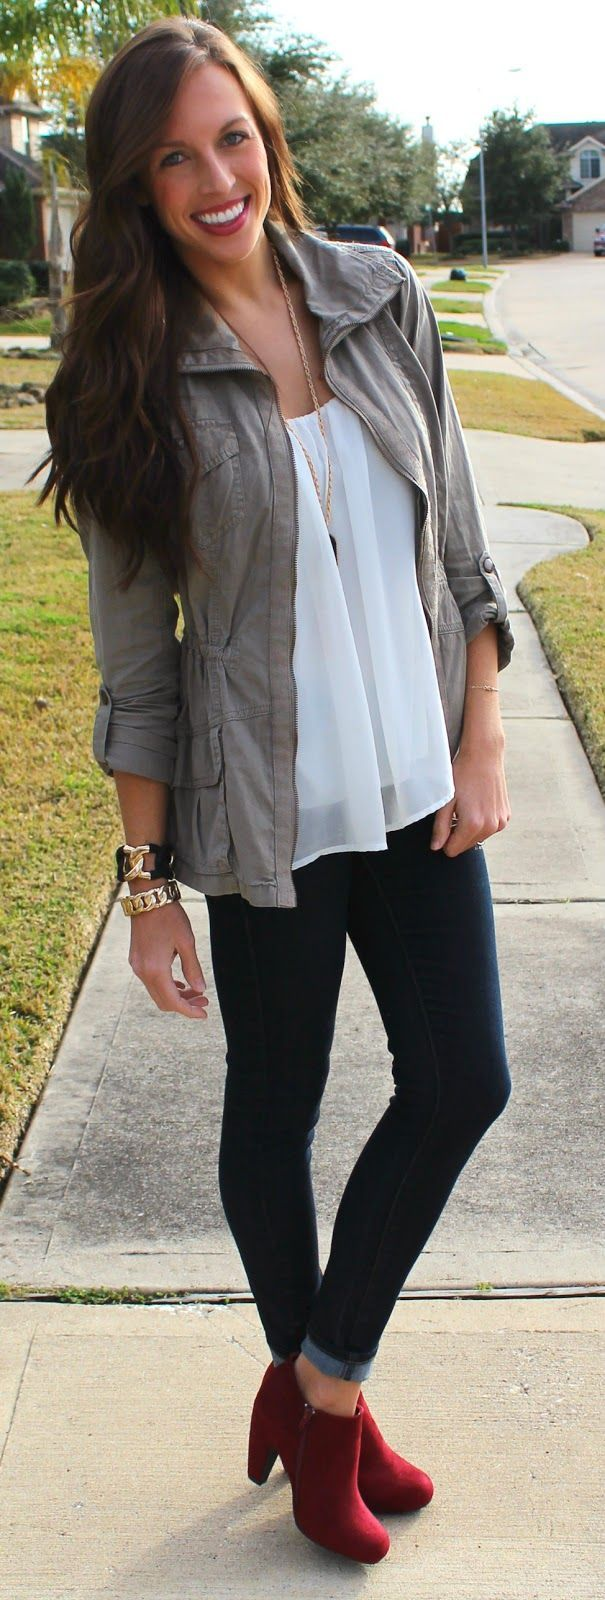 1000+ ideas about Dinner Date Outfits on Pinterest | Fall night outfit Dinner outfits and Date ...